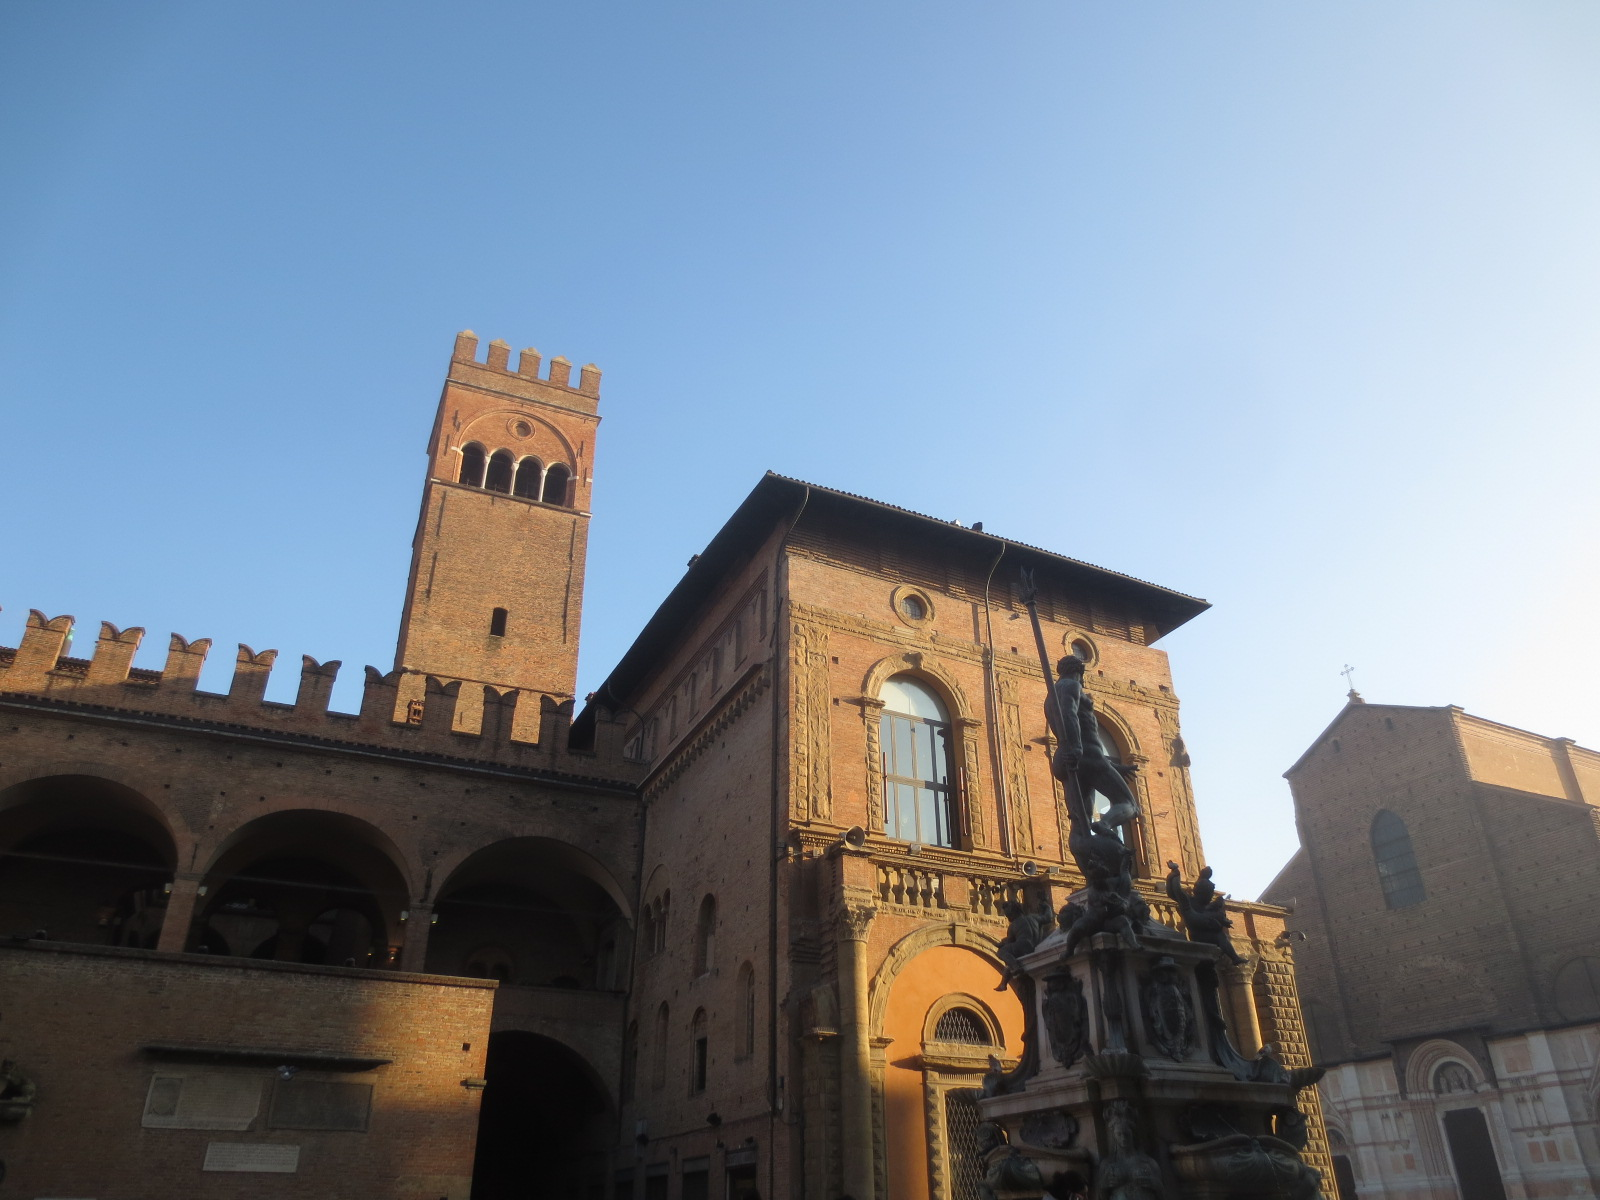 The Best of Bologna - Torre Arengo